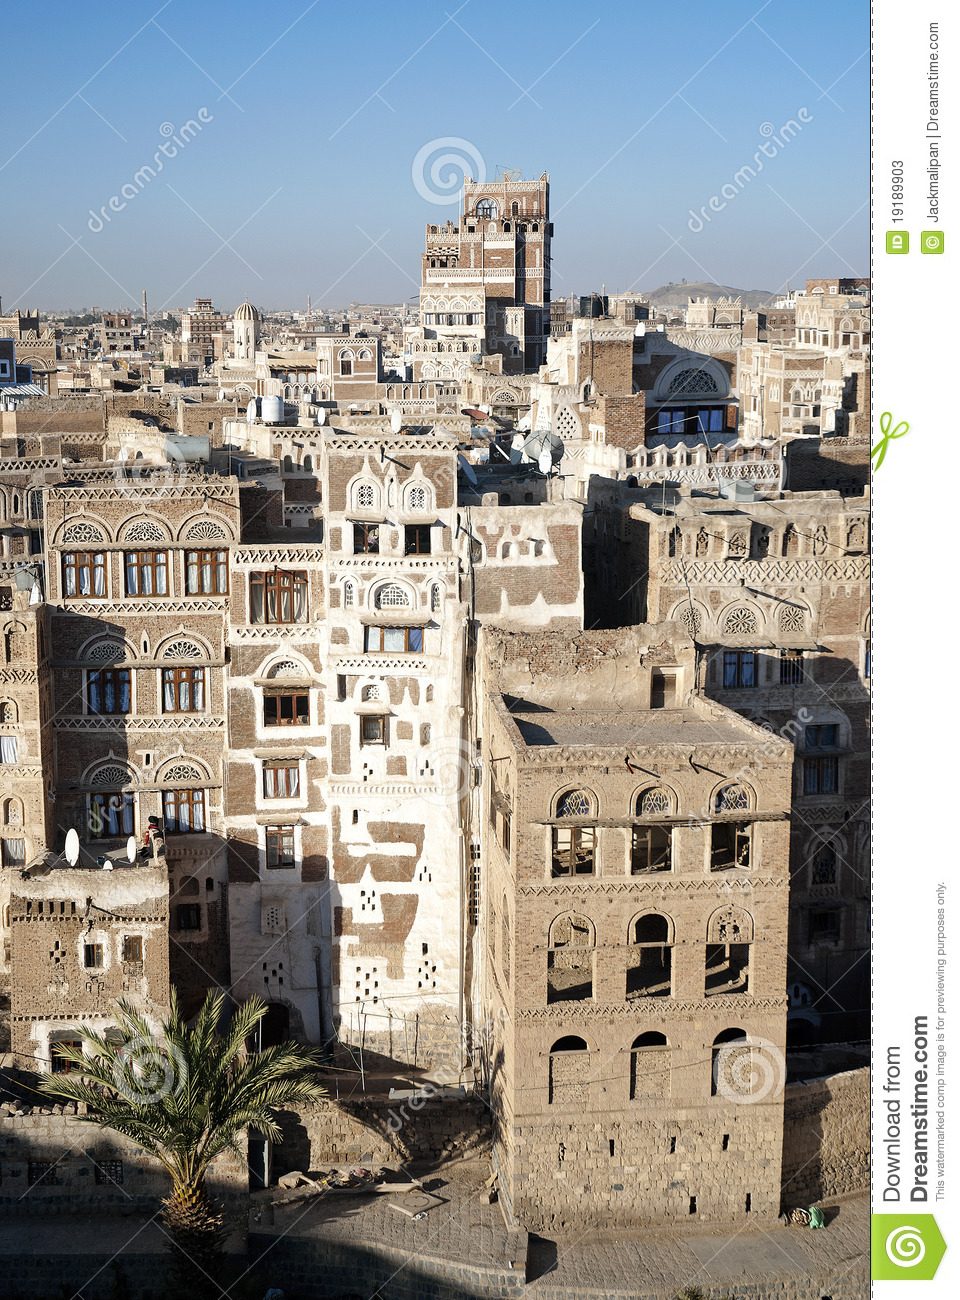 Traditional architecture in sanaa yemen stock photos for Architecture yemen